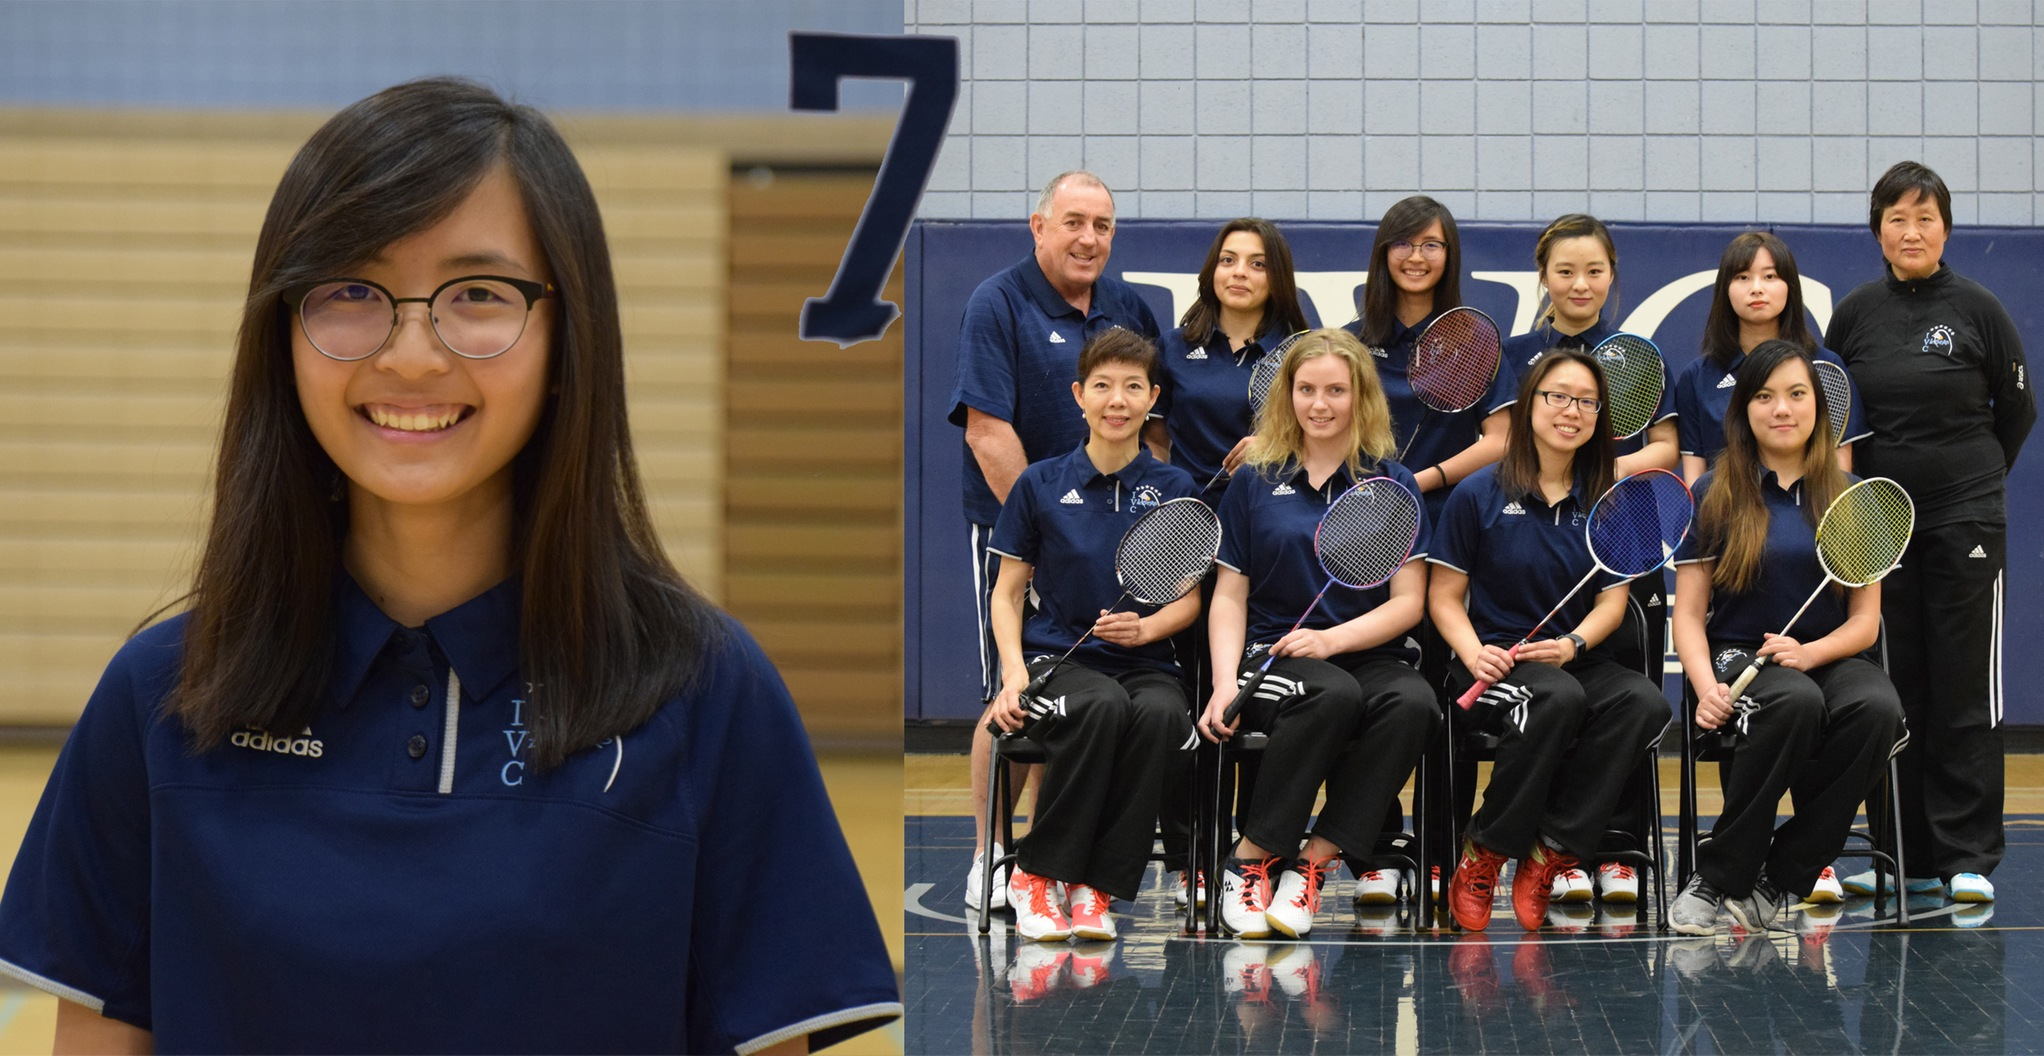 No. 7 Story of the Year - Badminton team shines in the spring